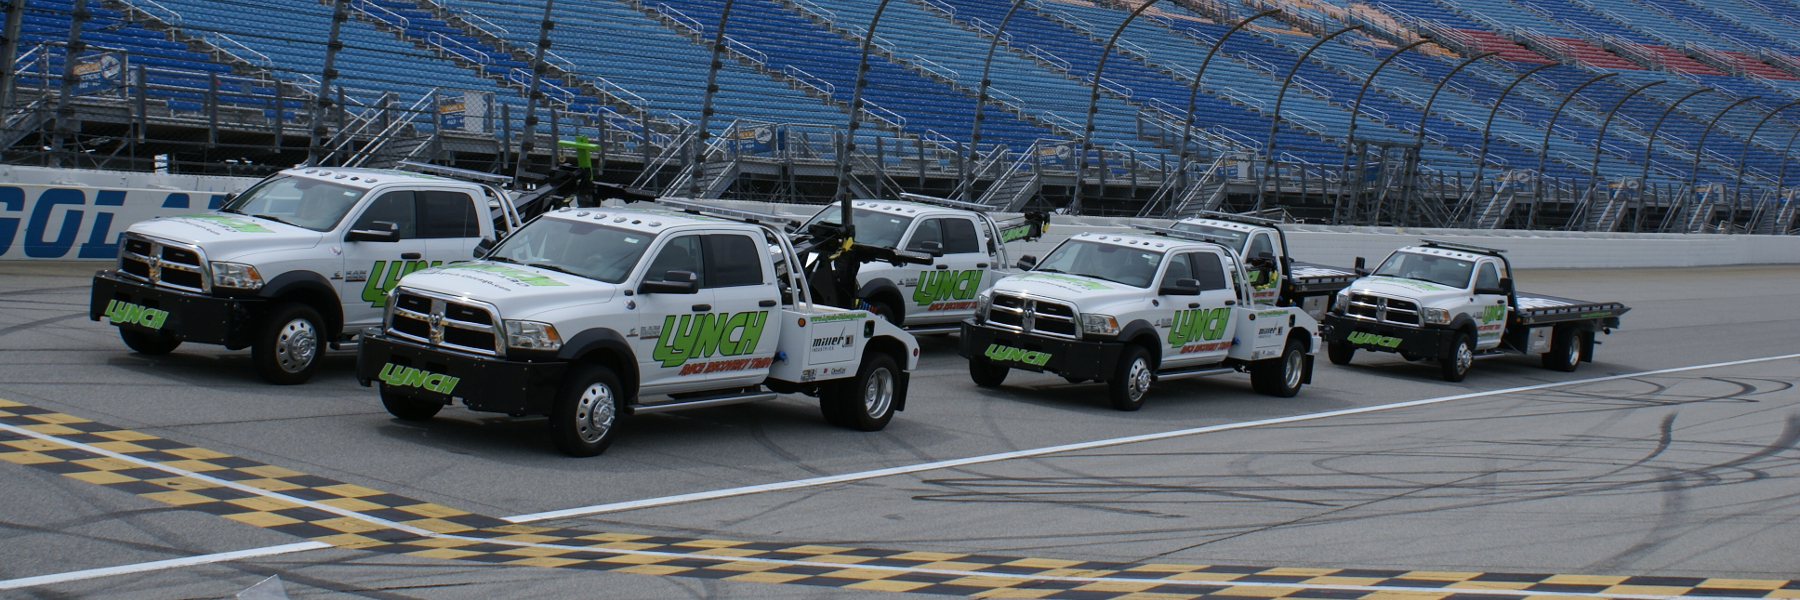 Lynch Tow Trucks on Race Track